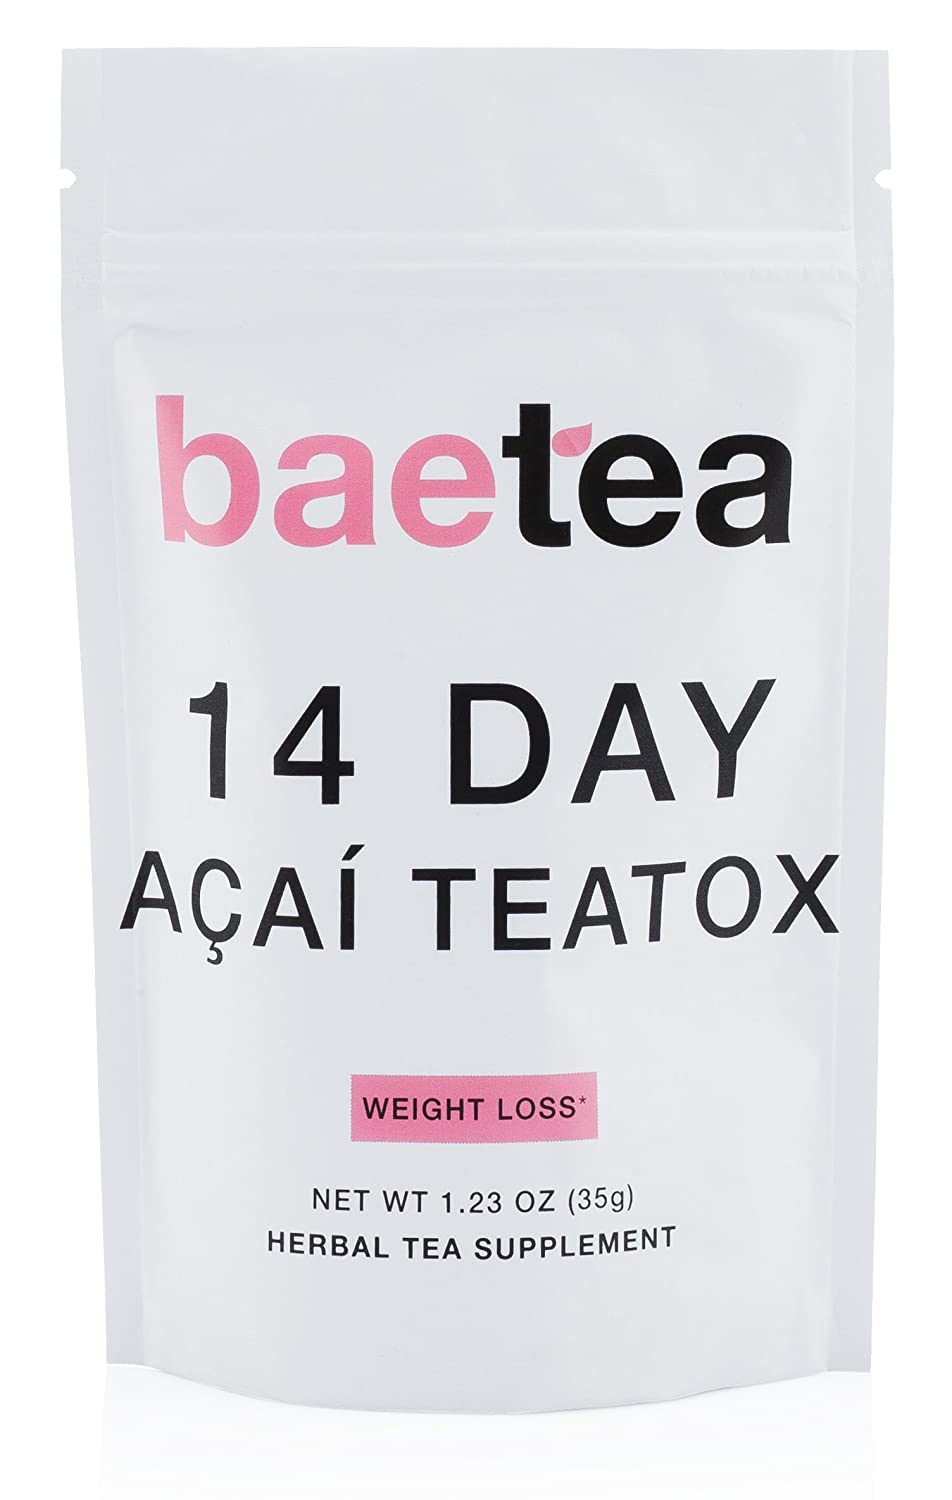 Baetea Acai Weight Loss Tea: Detox, Body Cleanse, Reduce Bloating, & Appetite Suppressant, 14 Day Acai Teatox, with Acai Berry, Goji Berry, Hibiscus Flower, Ultimate Way to Calm and Cleanse Your Body